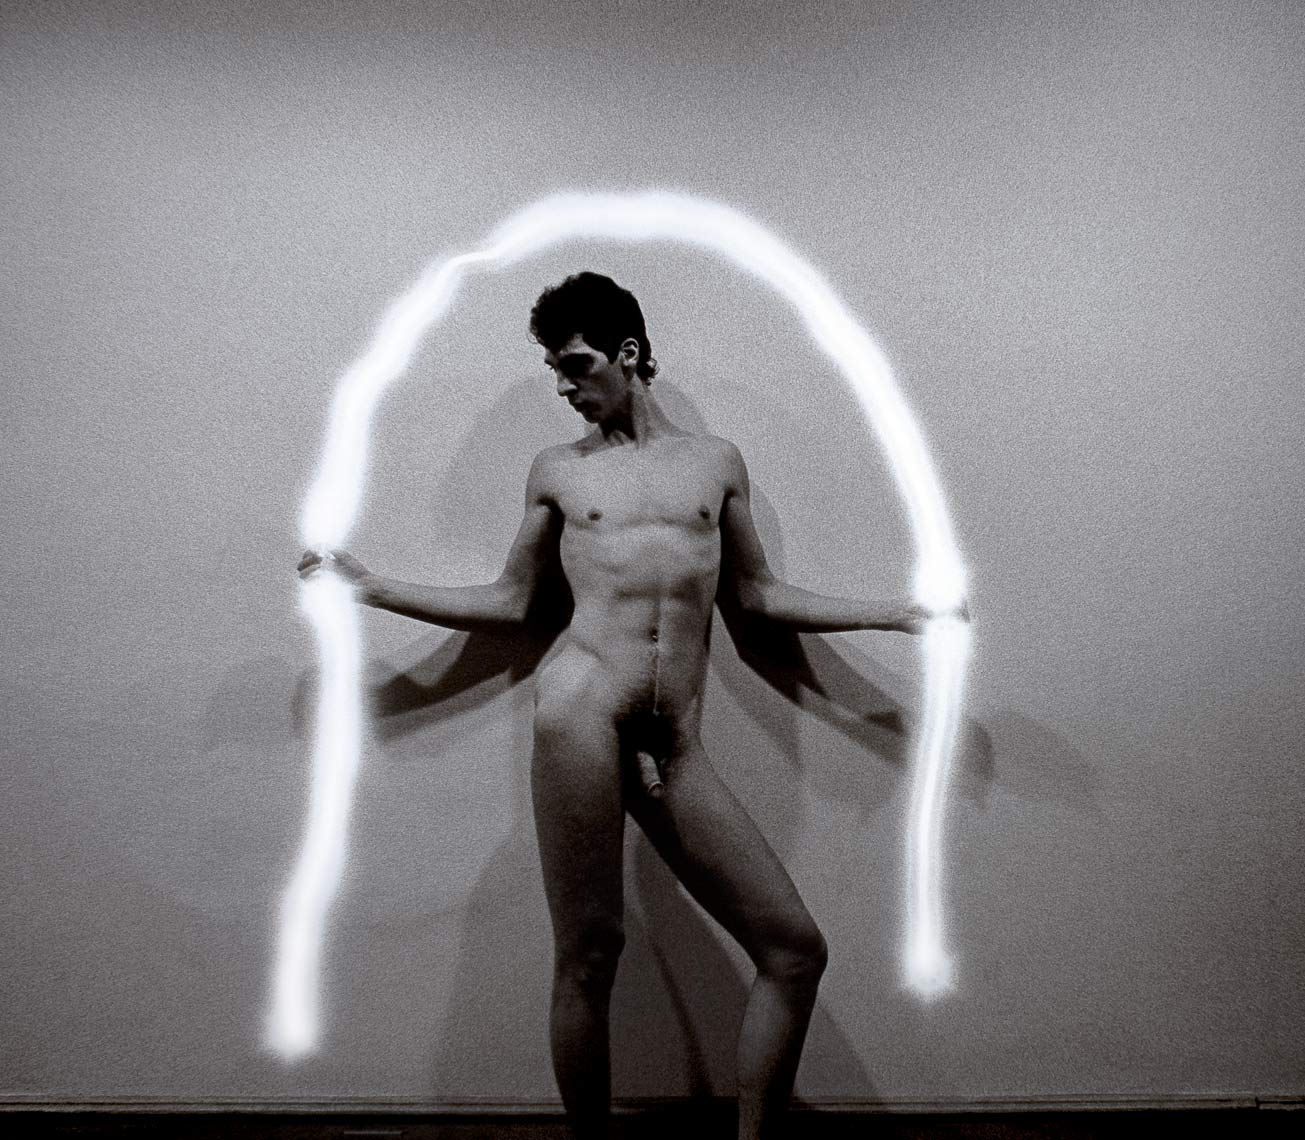 David Lebe; Renatos Arc, 1983, male nude, light drawing, black and white photograph